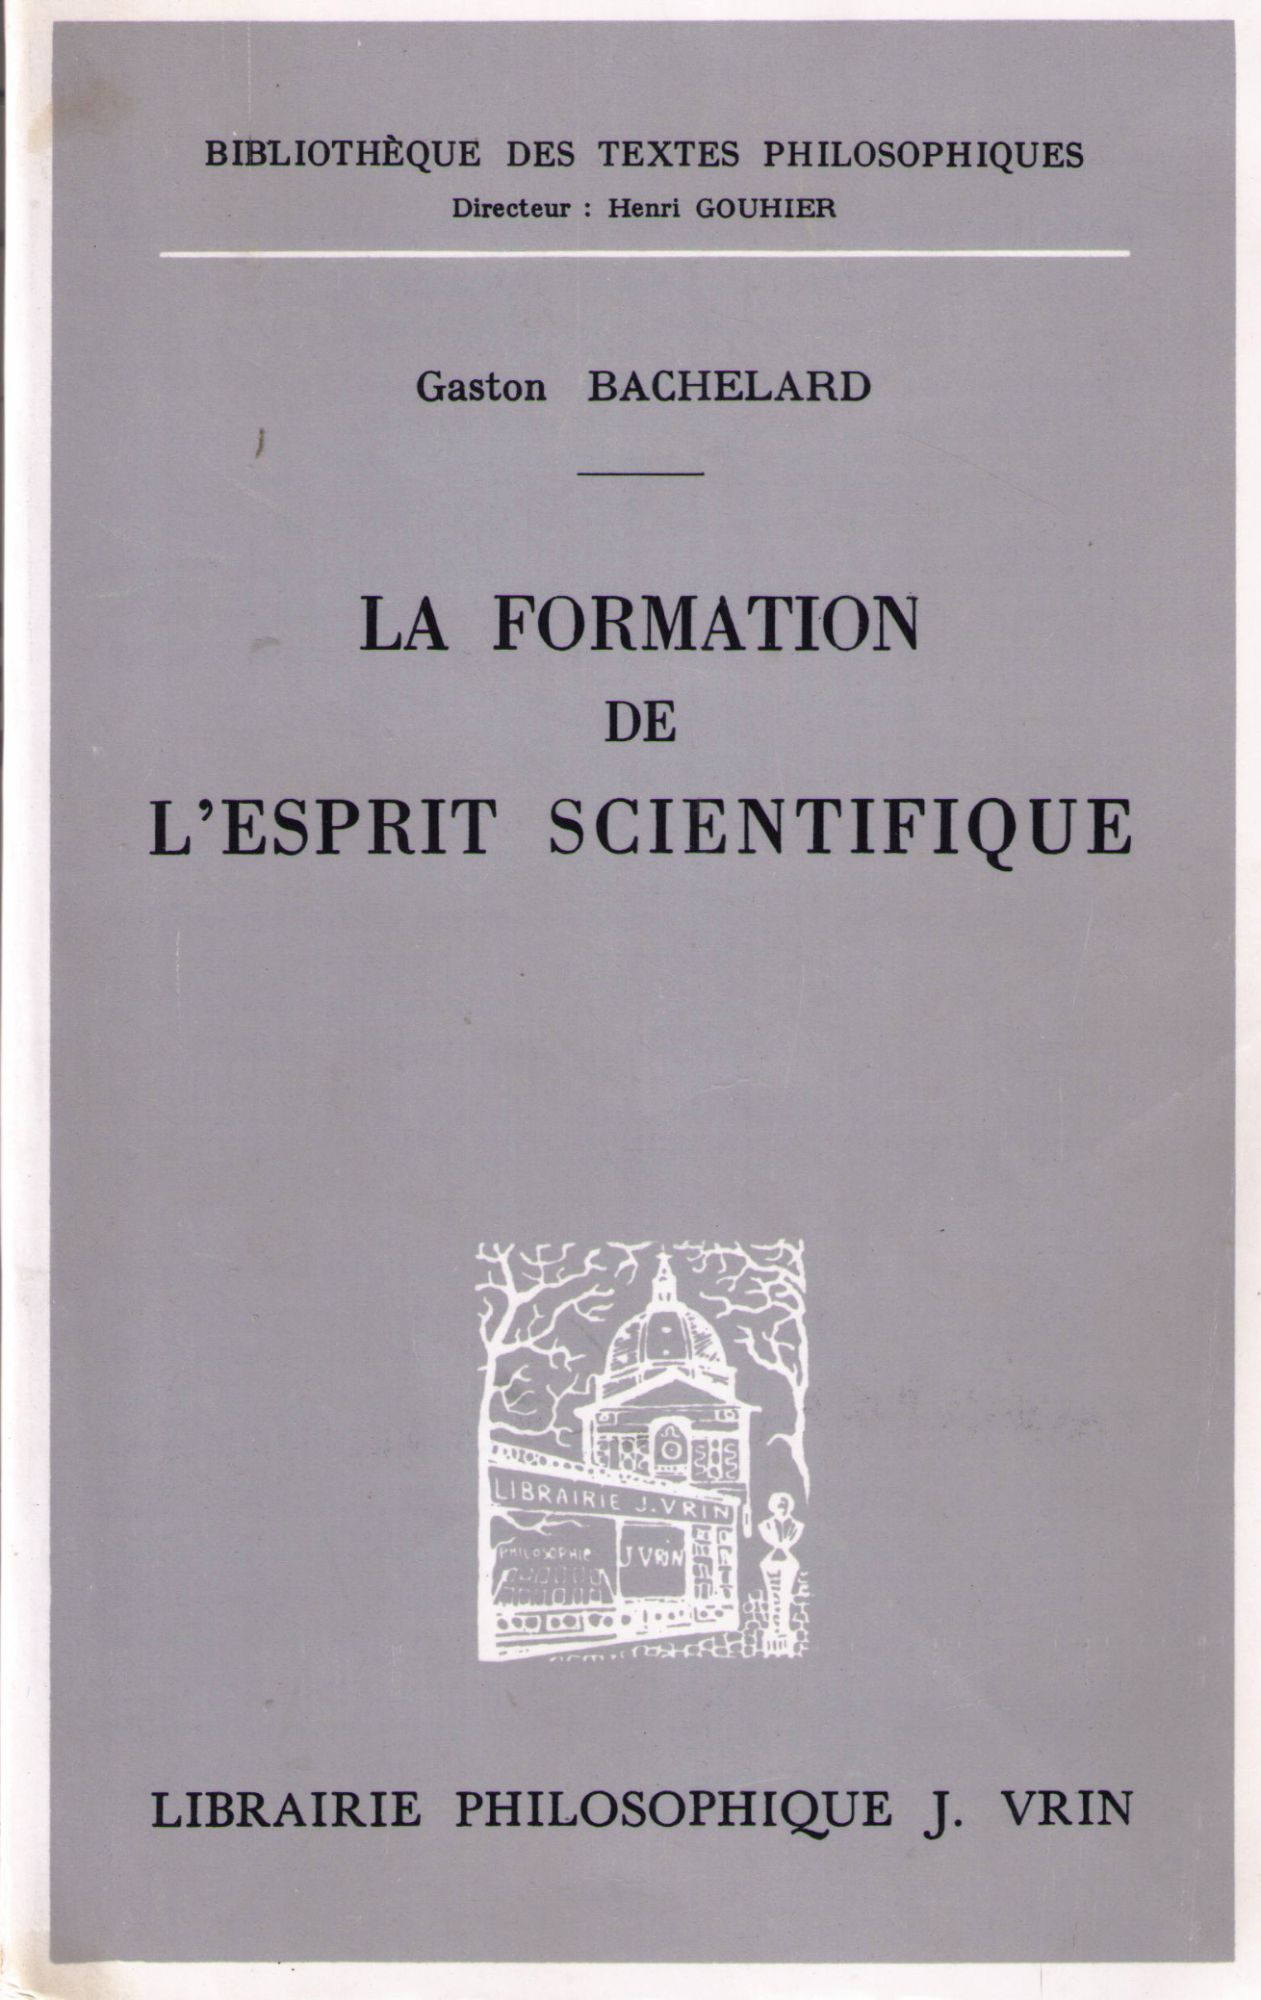 La formation de l'esprit scientifique. Librairie Philosophique J. Vrin, Paris. Collection